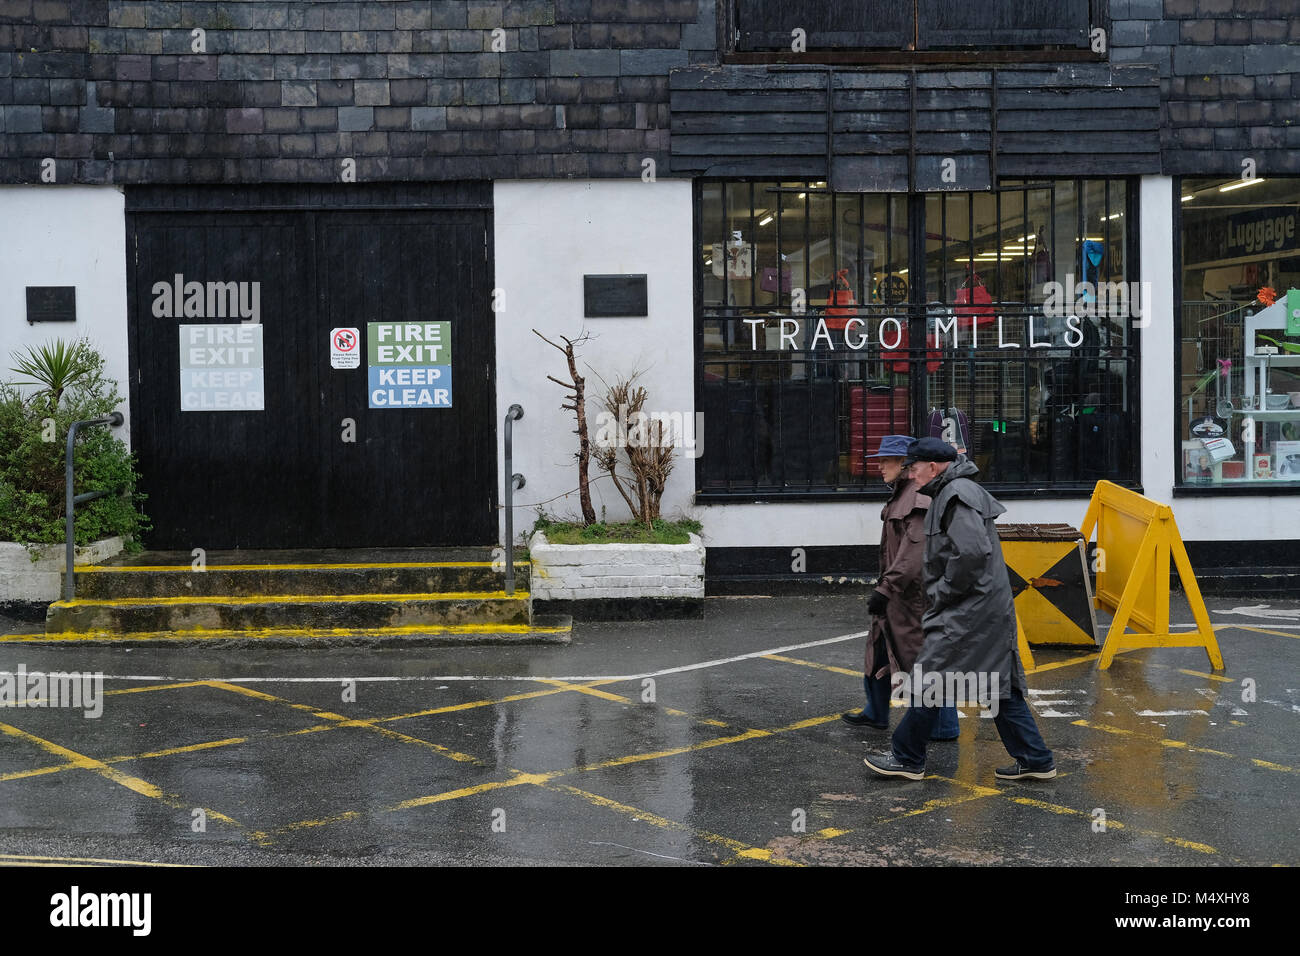 People walking past Trago Mills in Falmouth, Cornwall. - Stock Image